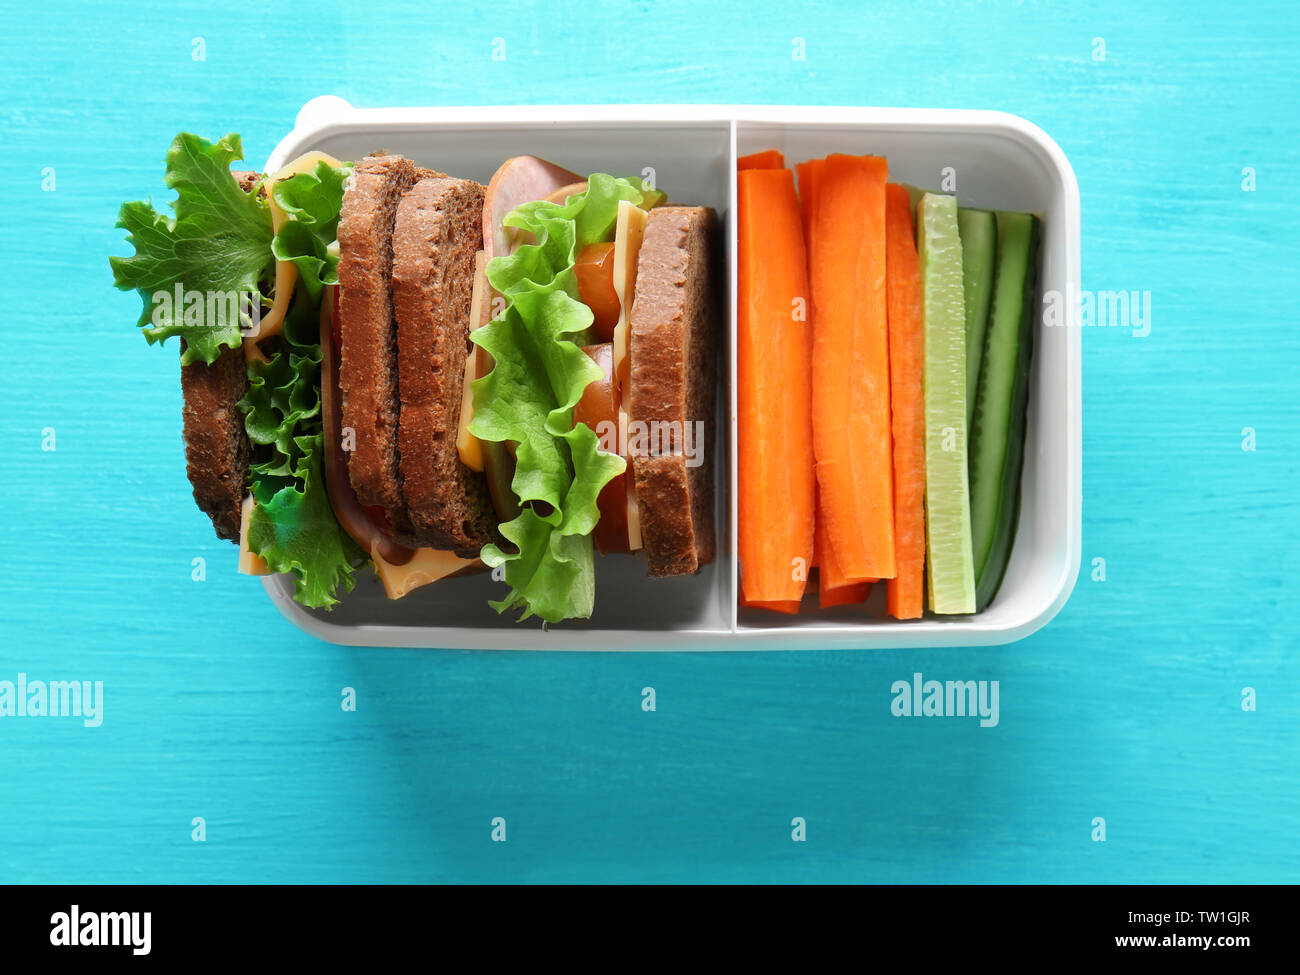 Healthy school lunch in plastic box on blue wooden table Stock Photo